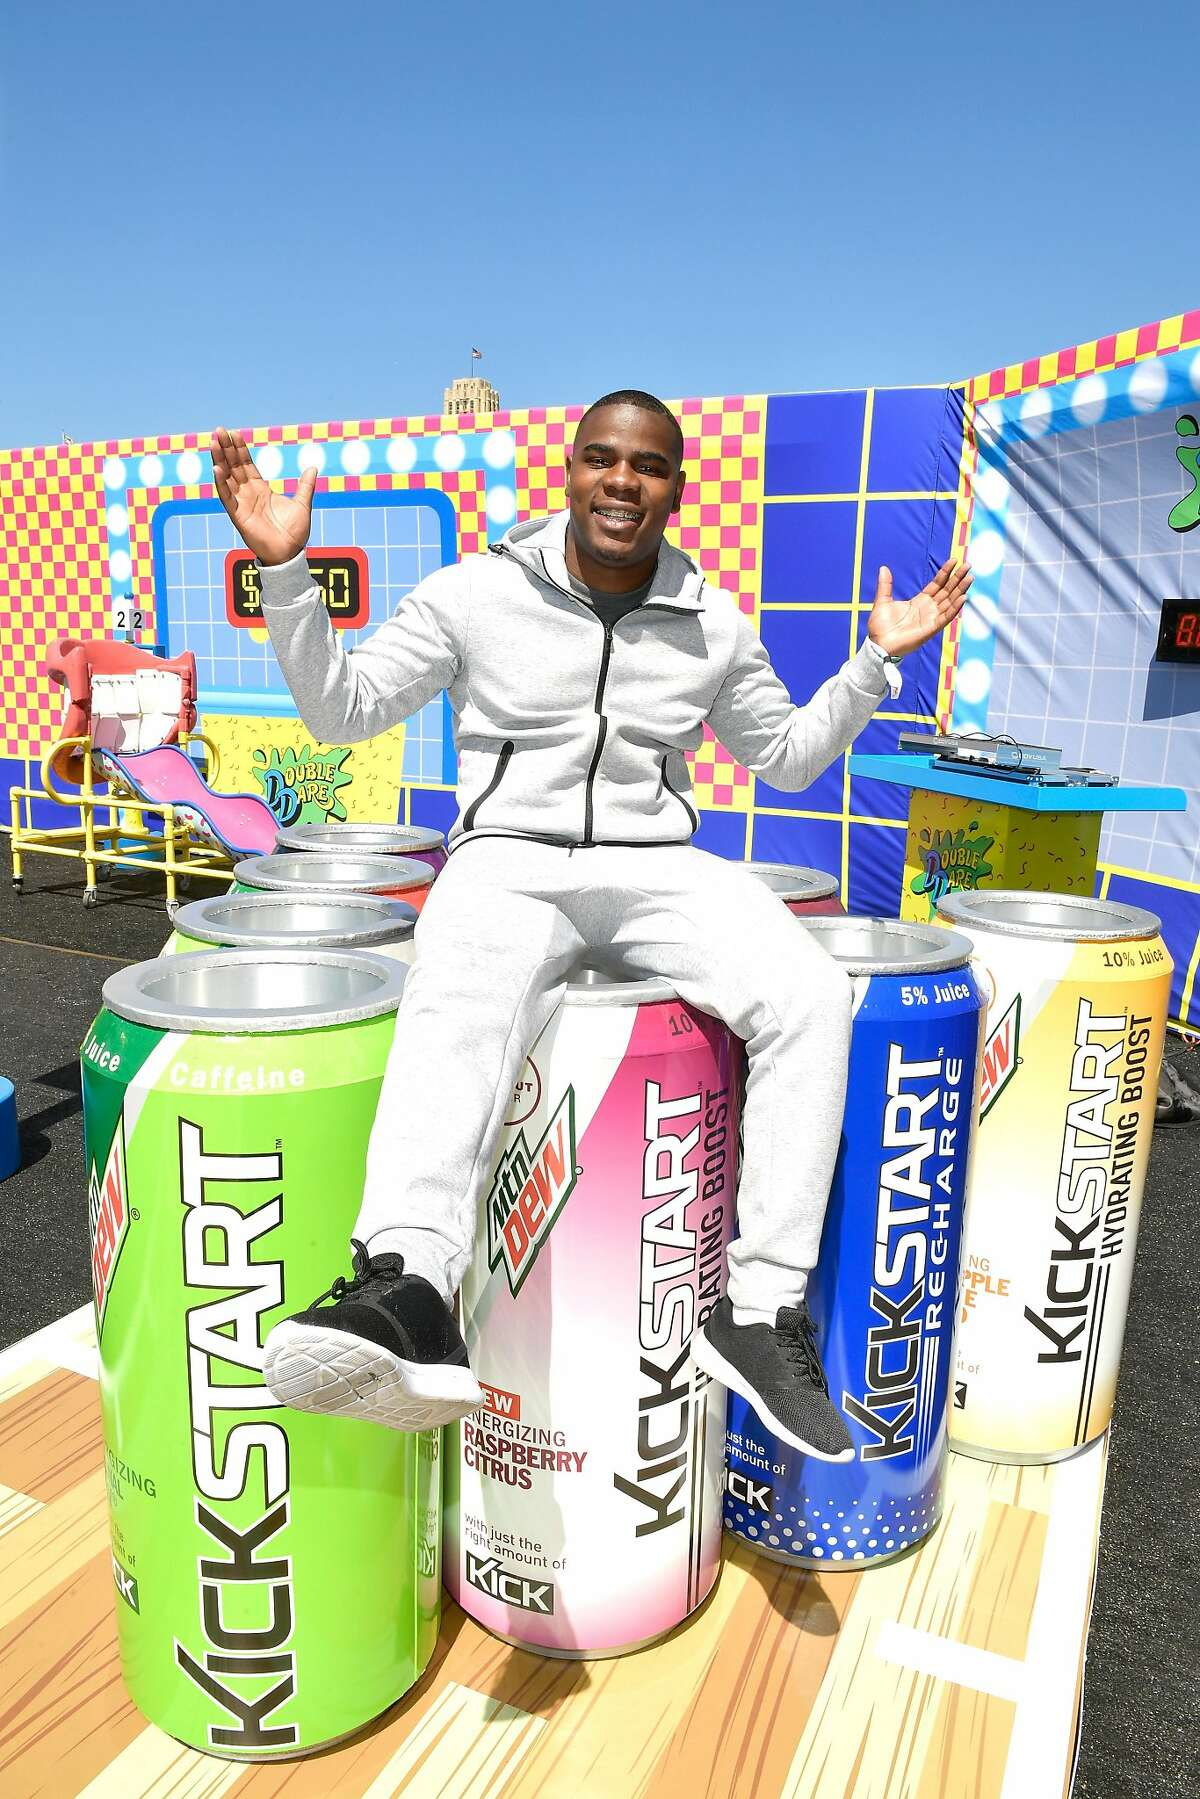 SAN FRANCISCO, CA - JUNE 01: HaHa Davis attends Double Dare presented by Mtn Dew Kickstart at Comedy Central presents Clusterfest on June 1, 2018 in San Francisco, California. (Photo by Matt Winkelmeyer/Getty Images for Mountain Dew)